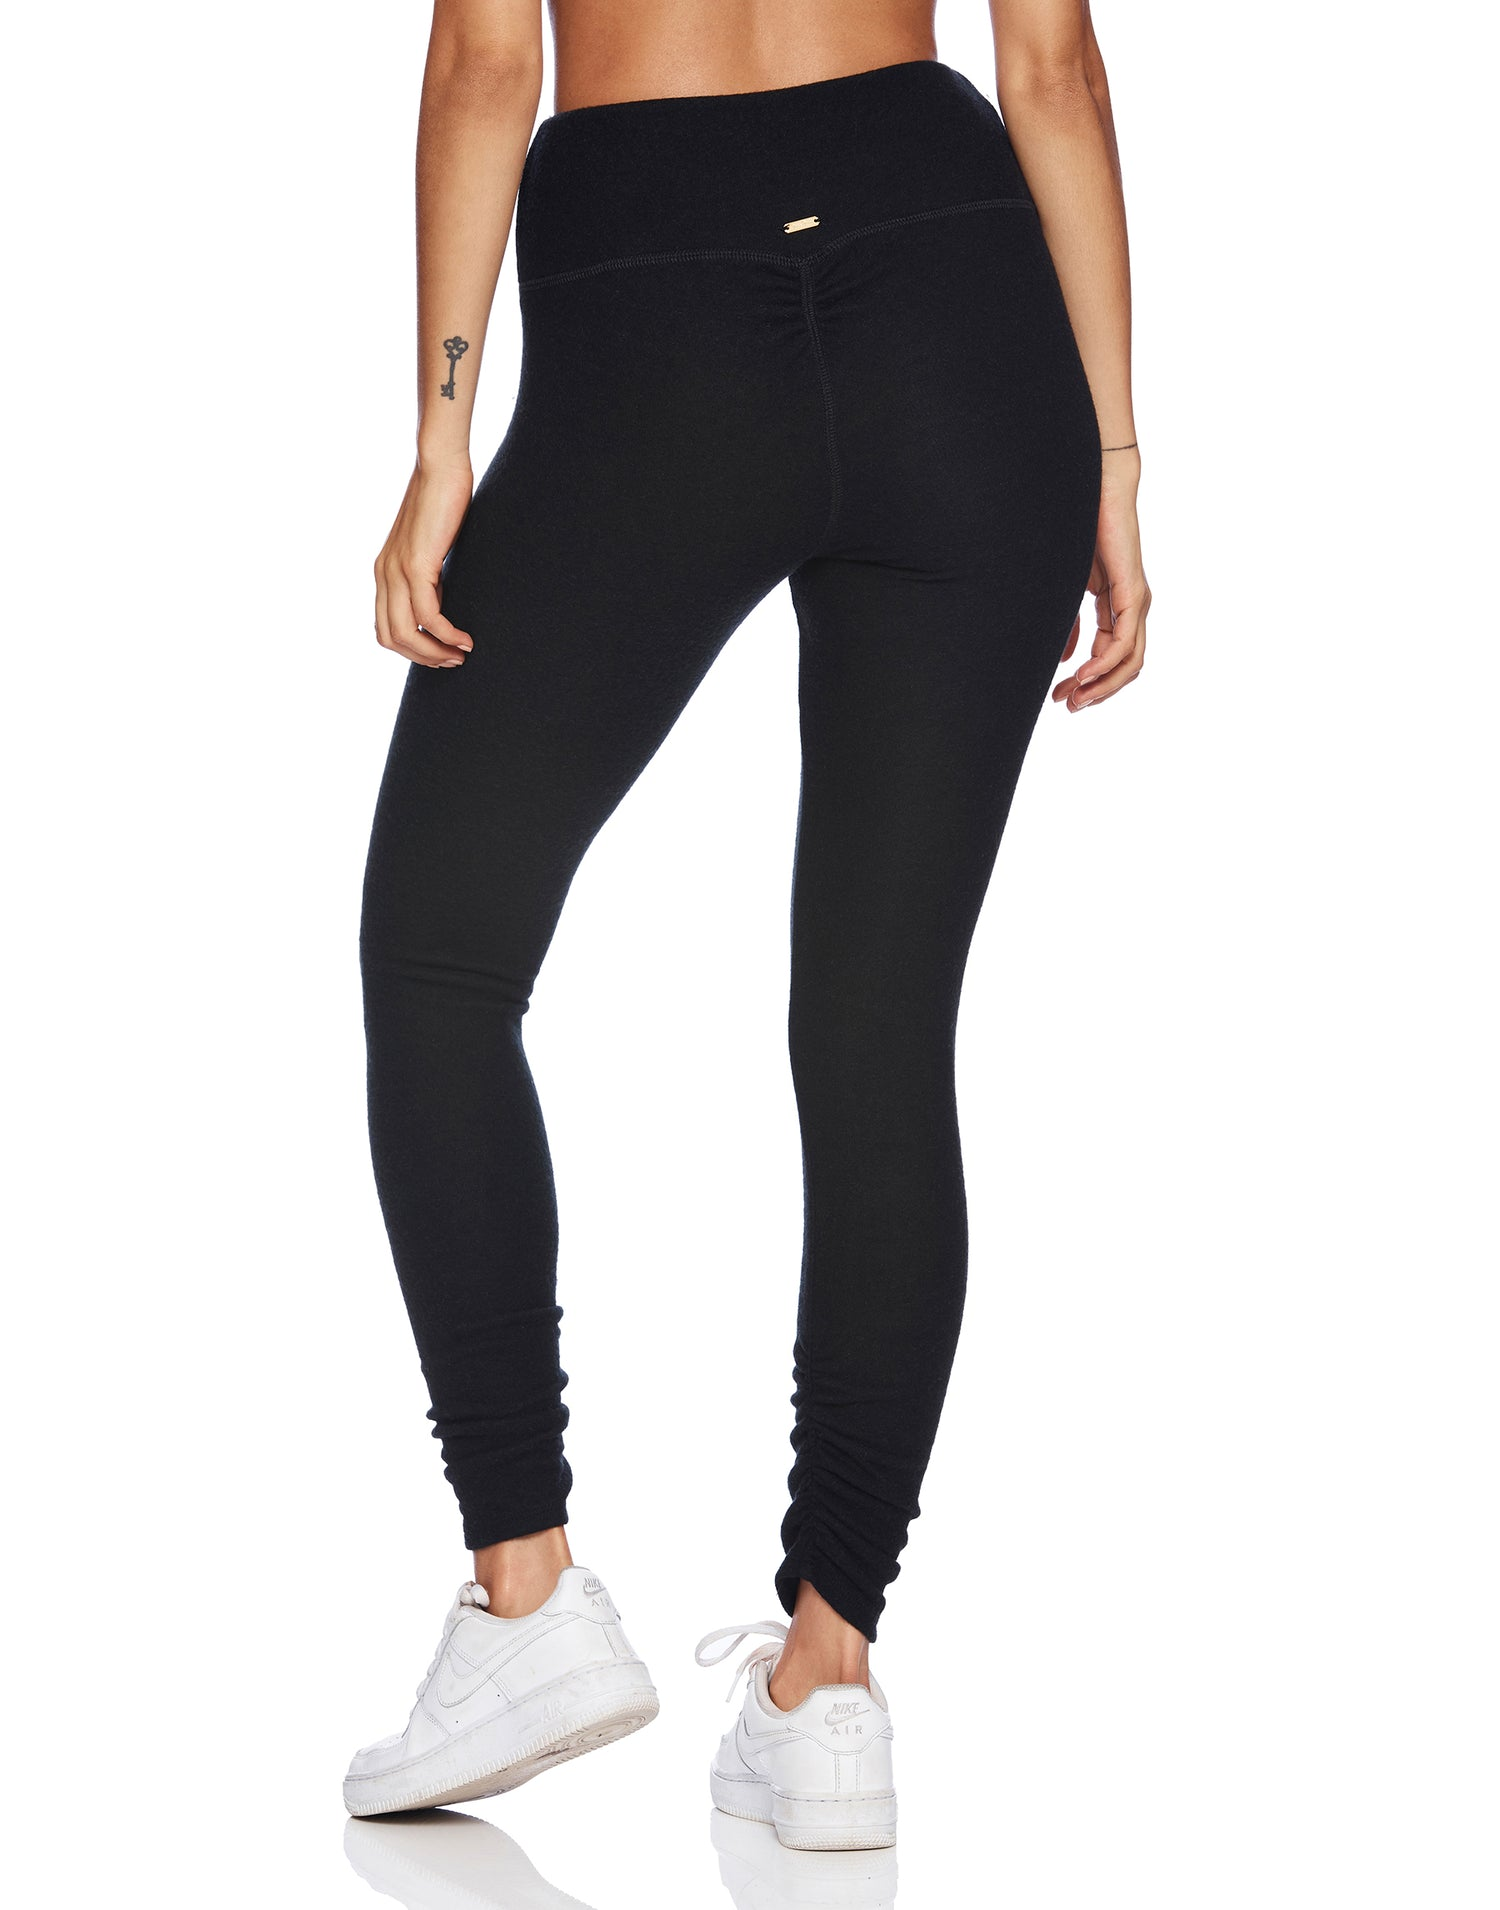 Josie Legging in Black with Ruching at the Bottom Leg - back view